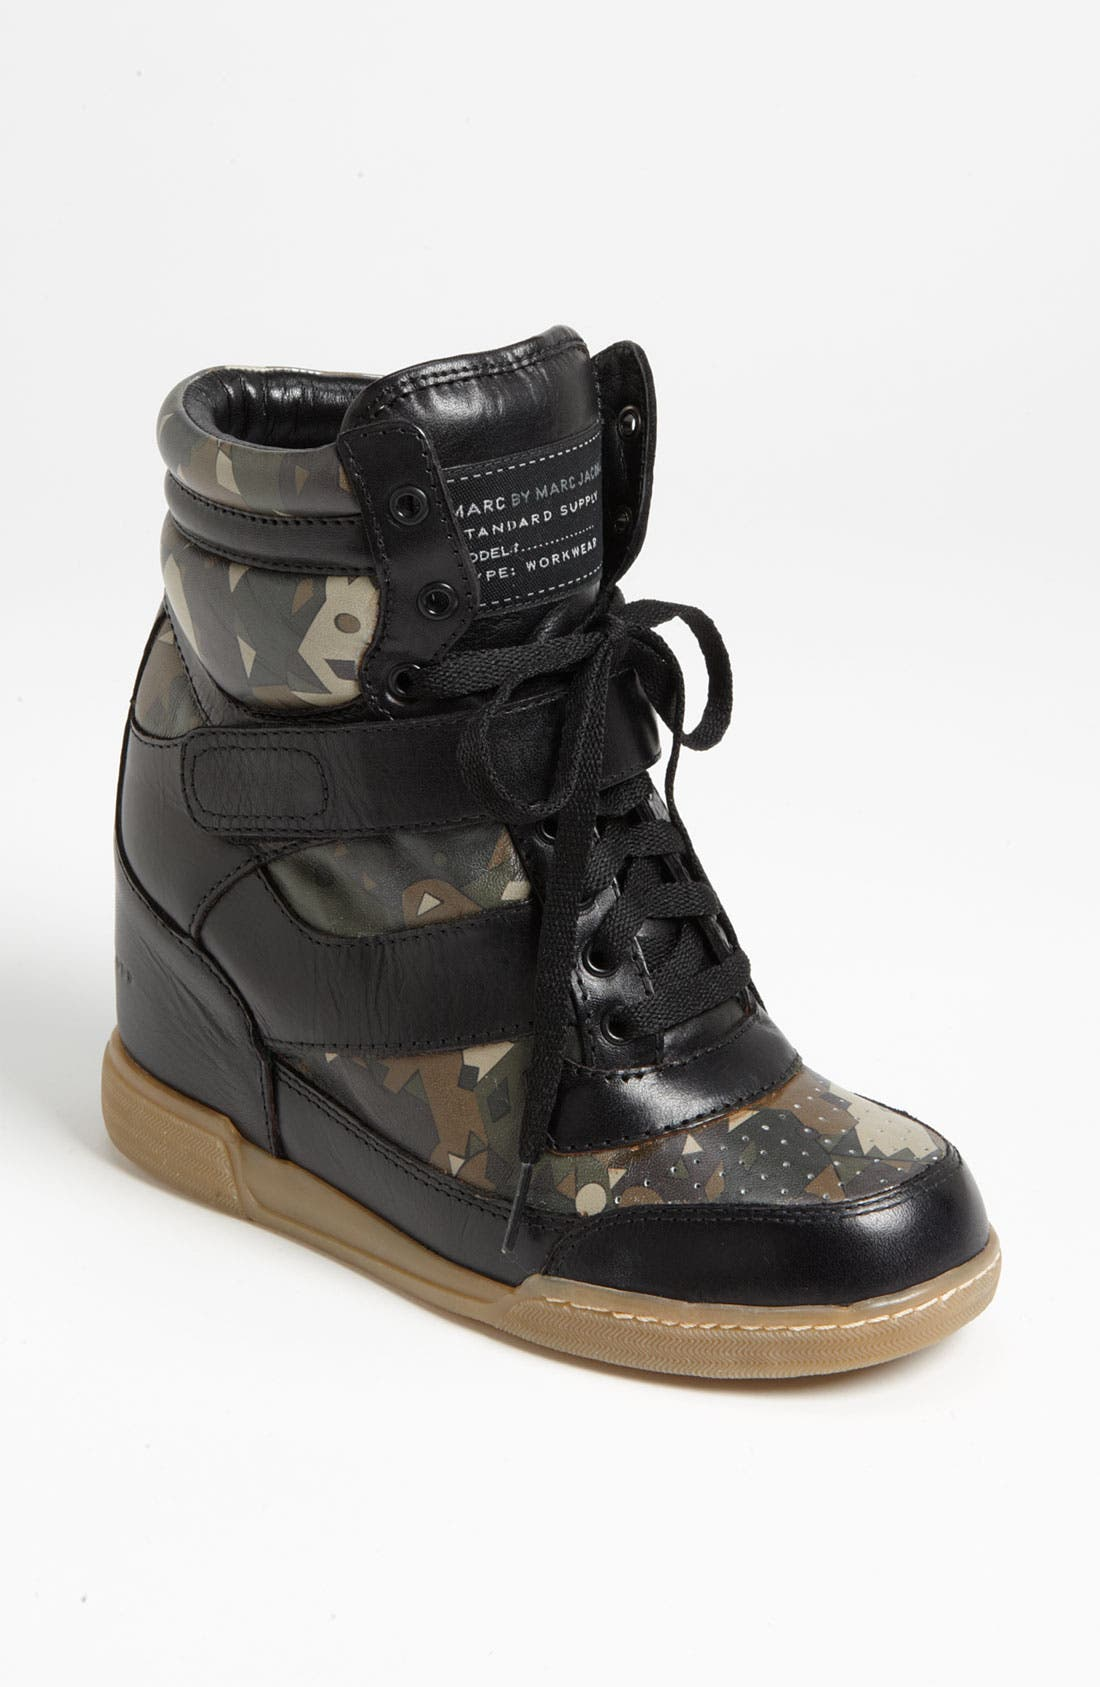 Main Image - MARC BY MARC JACOBS High Top Wedge Sneaker